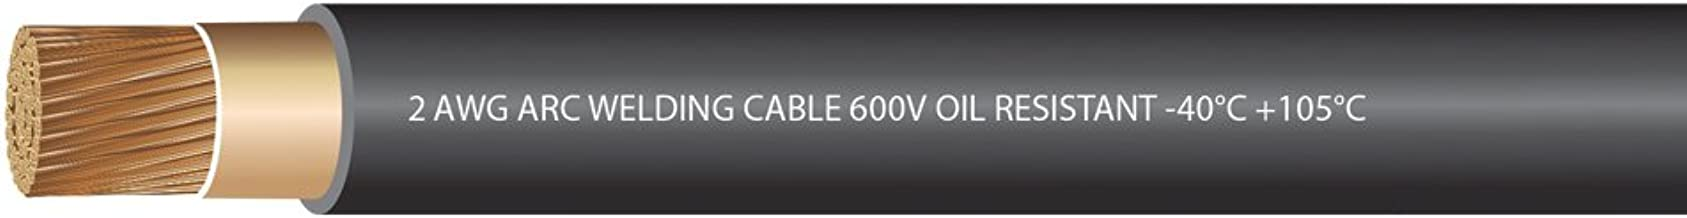 EWCS 2 Gauge Premium Extra Flexible Welding Cable 600 VOLT - Black - 25 Feet - Made in the USA